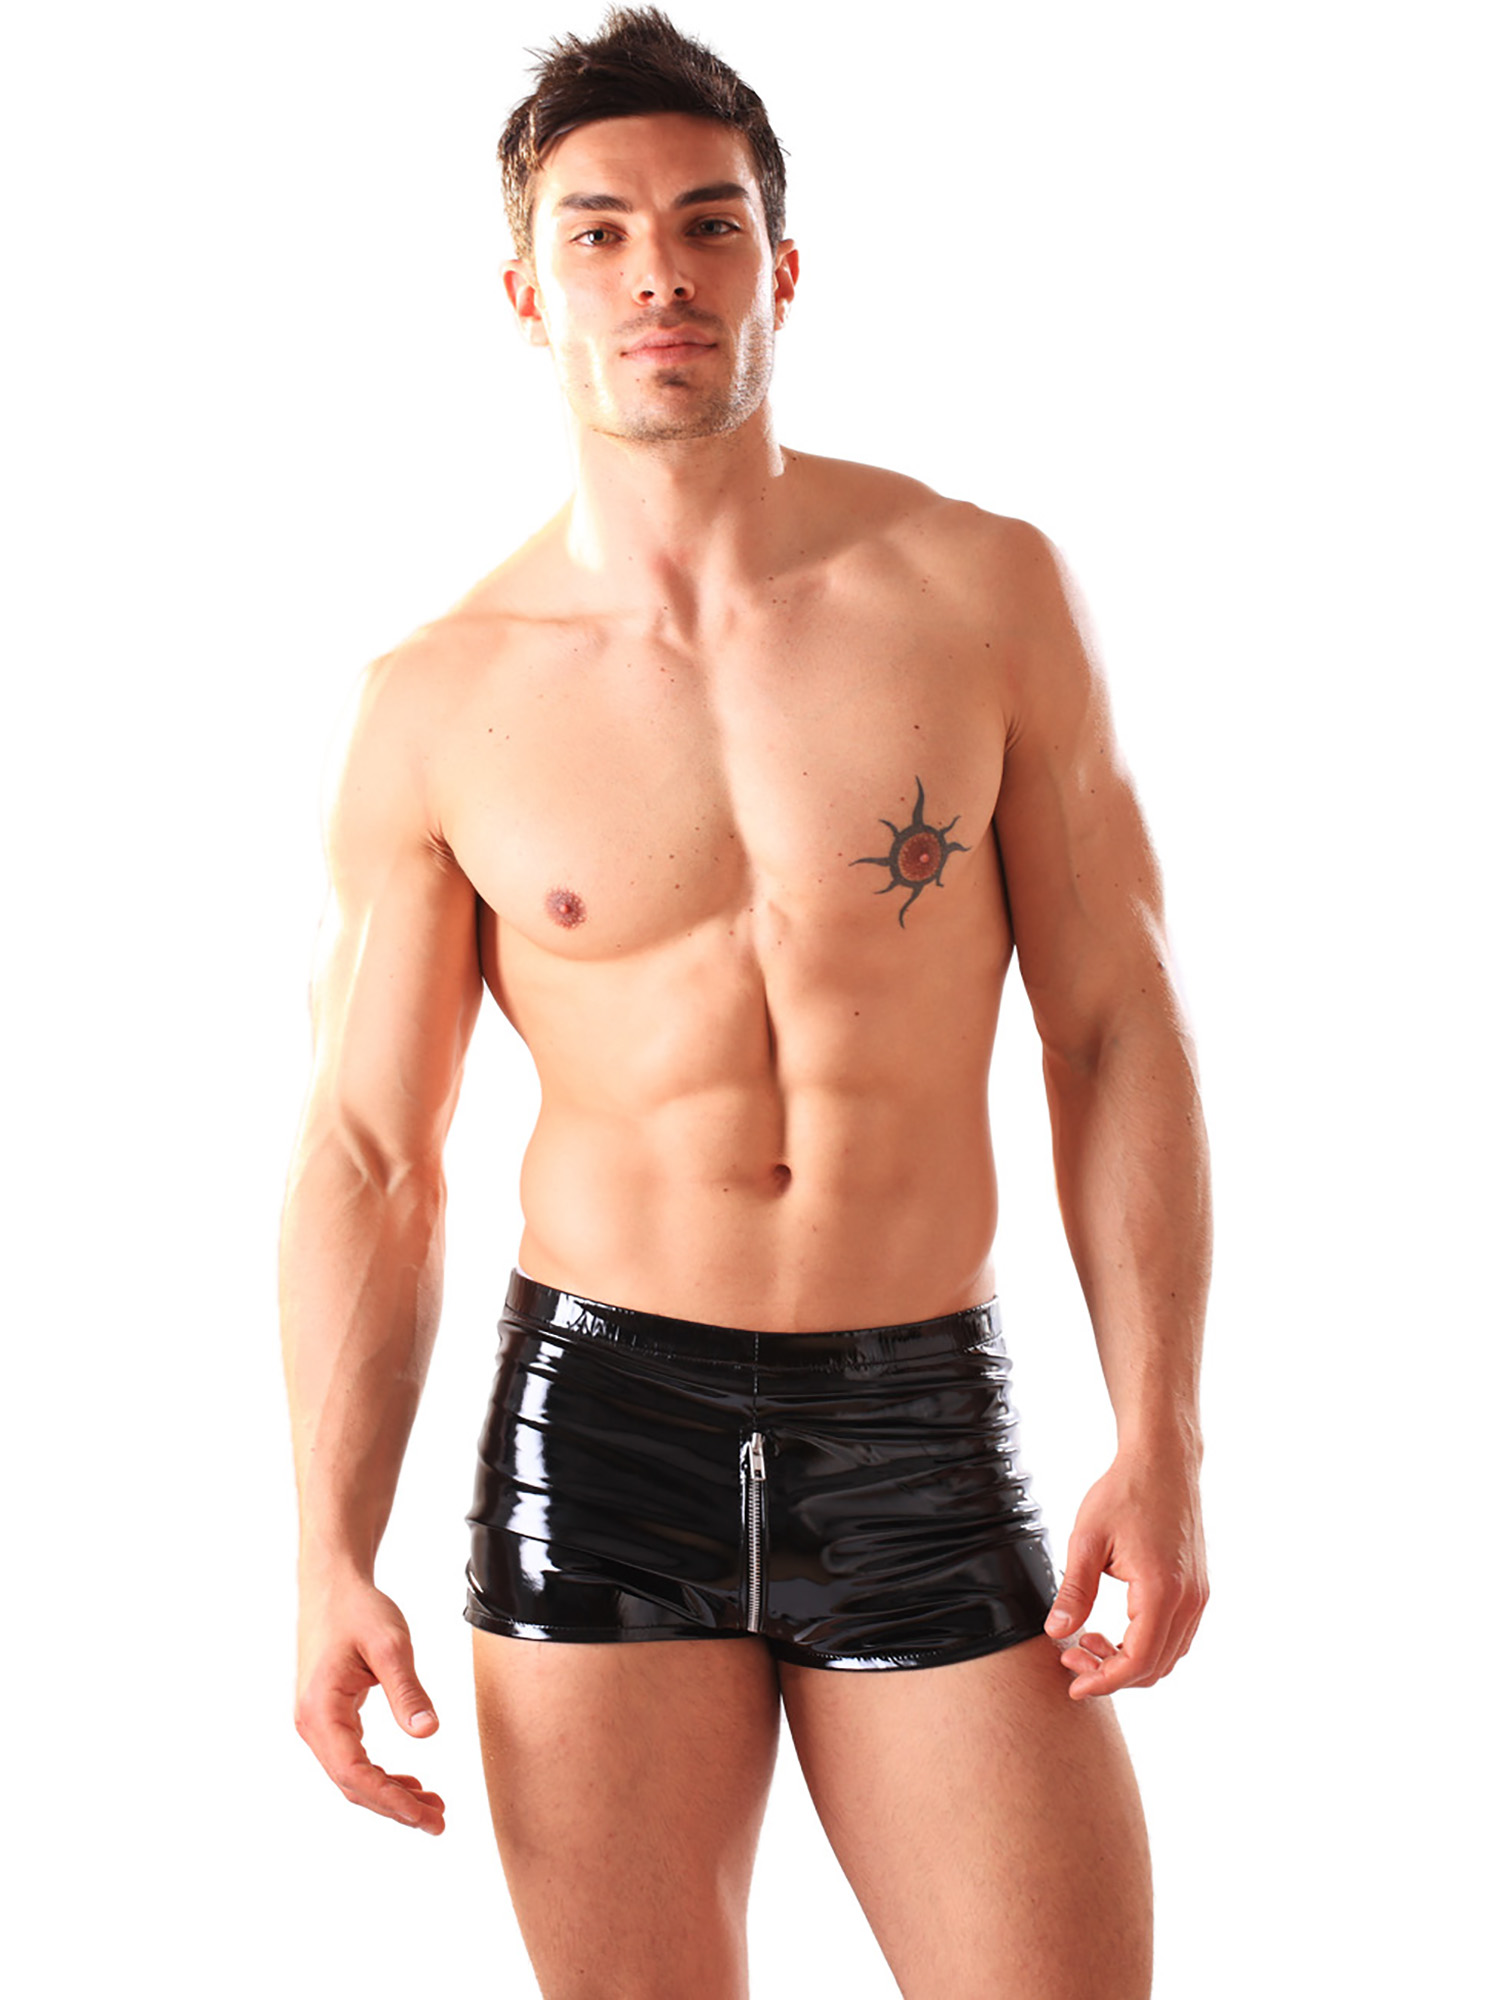 Honour Men's Kinky Boxer Shorts Underwear in Smooth Shiny ...